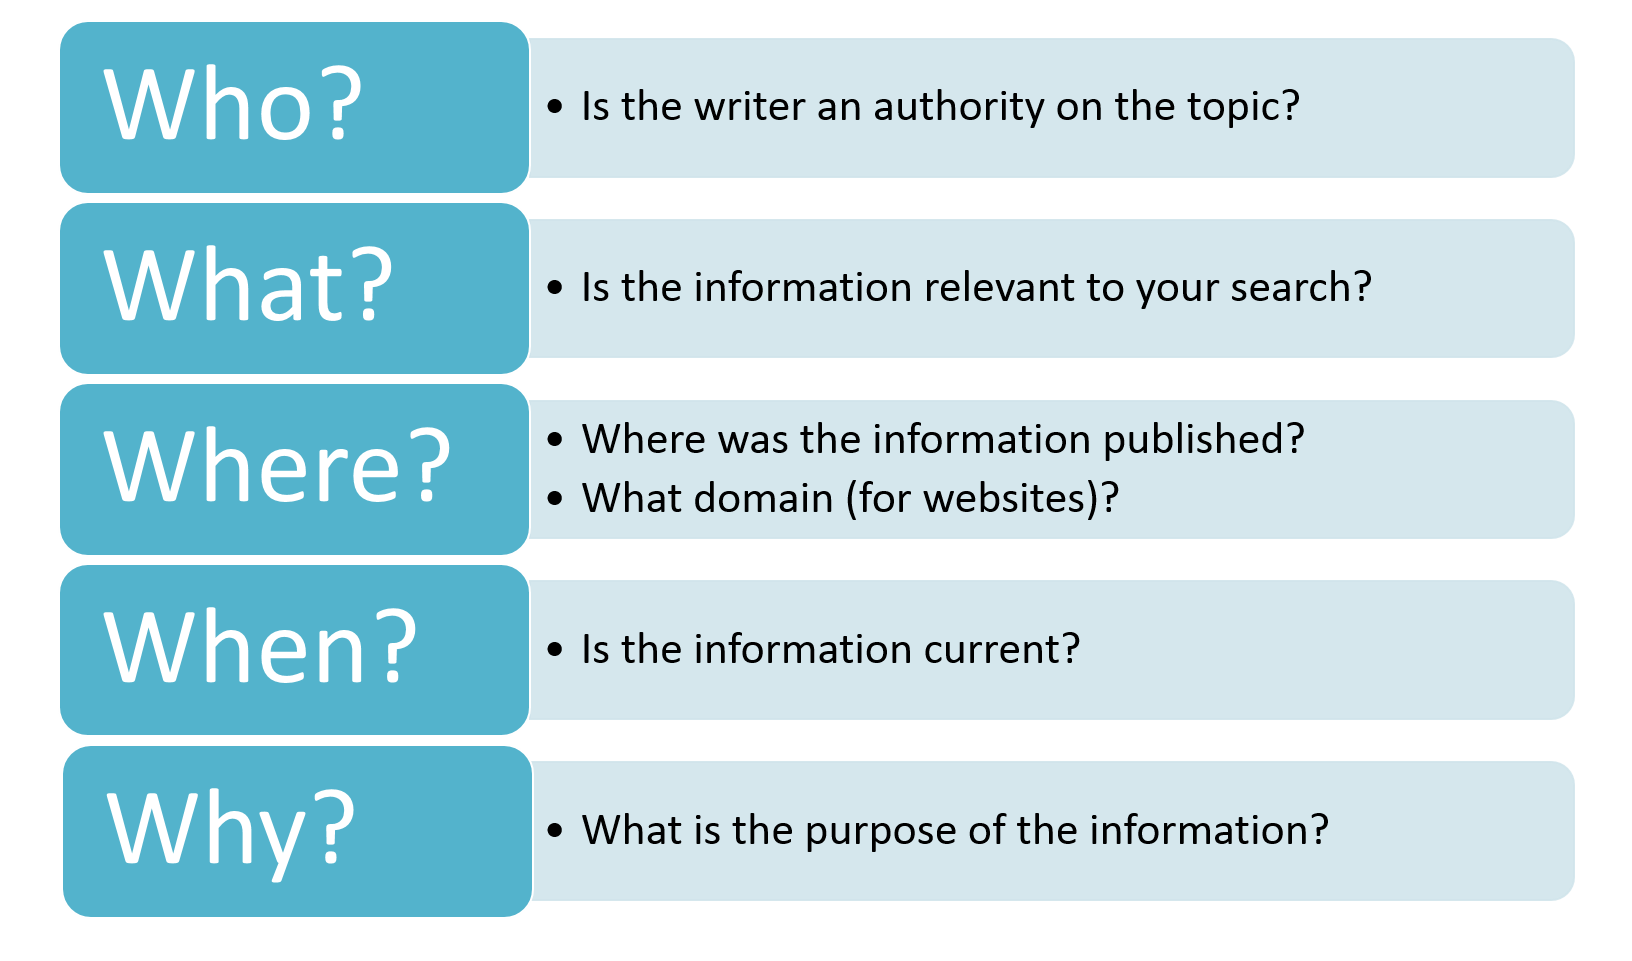 Who? Is the writer an authority on the topic?, What? Is the information relevant to your search? Where? Where is the information published? What domain (for websites)? When? Is the information current? Why? What is the purpose of the information?